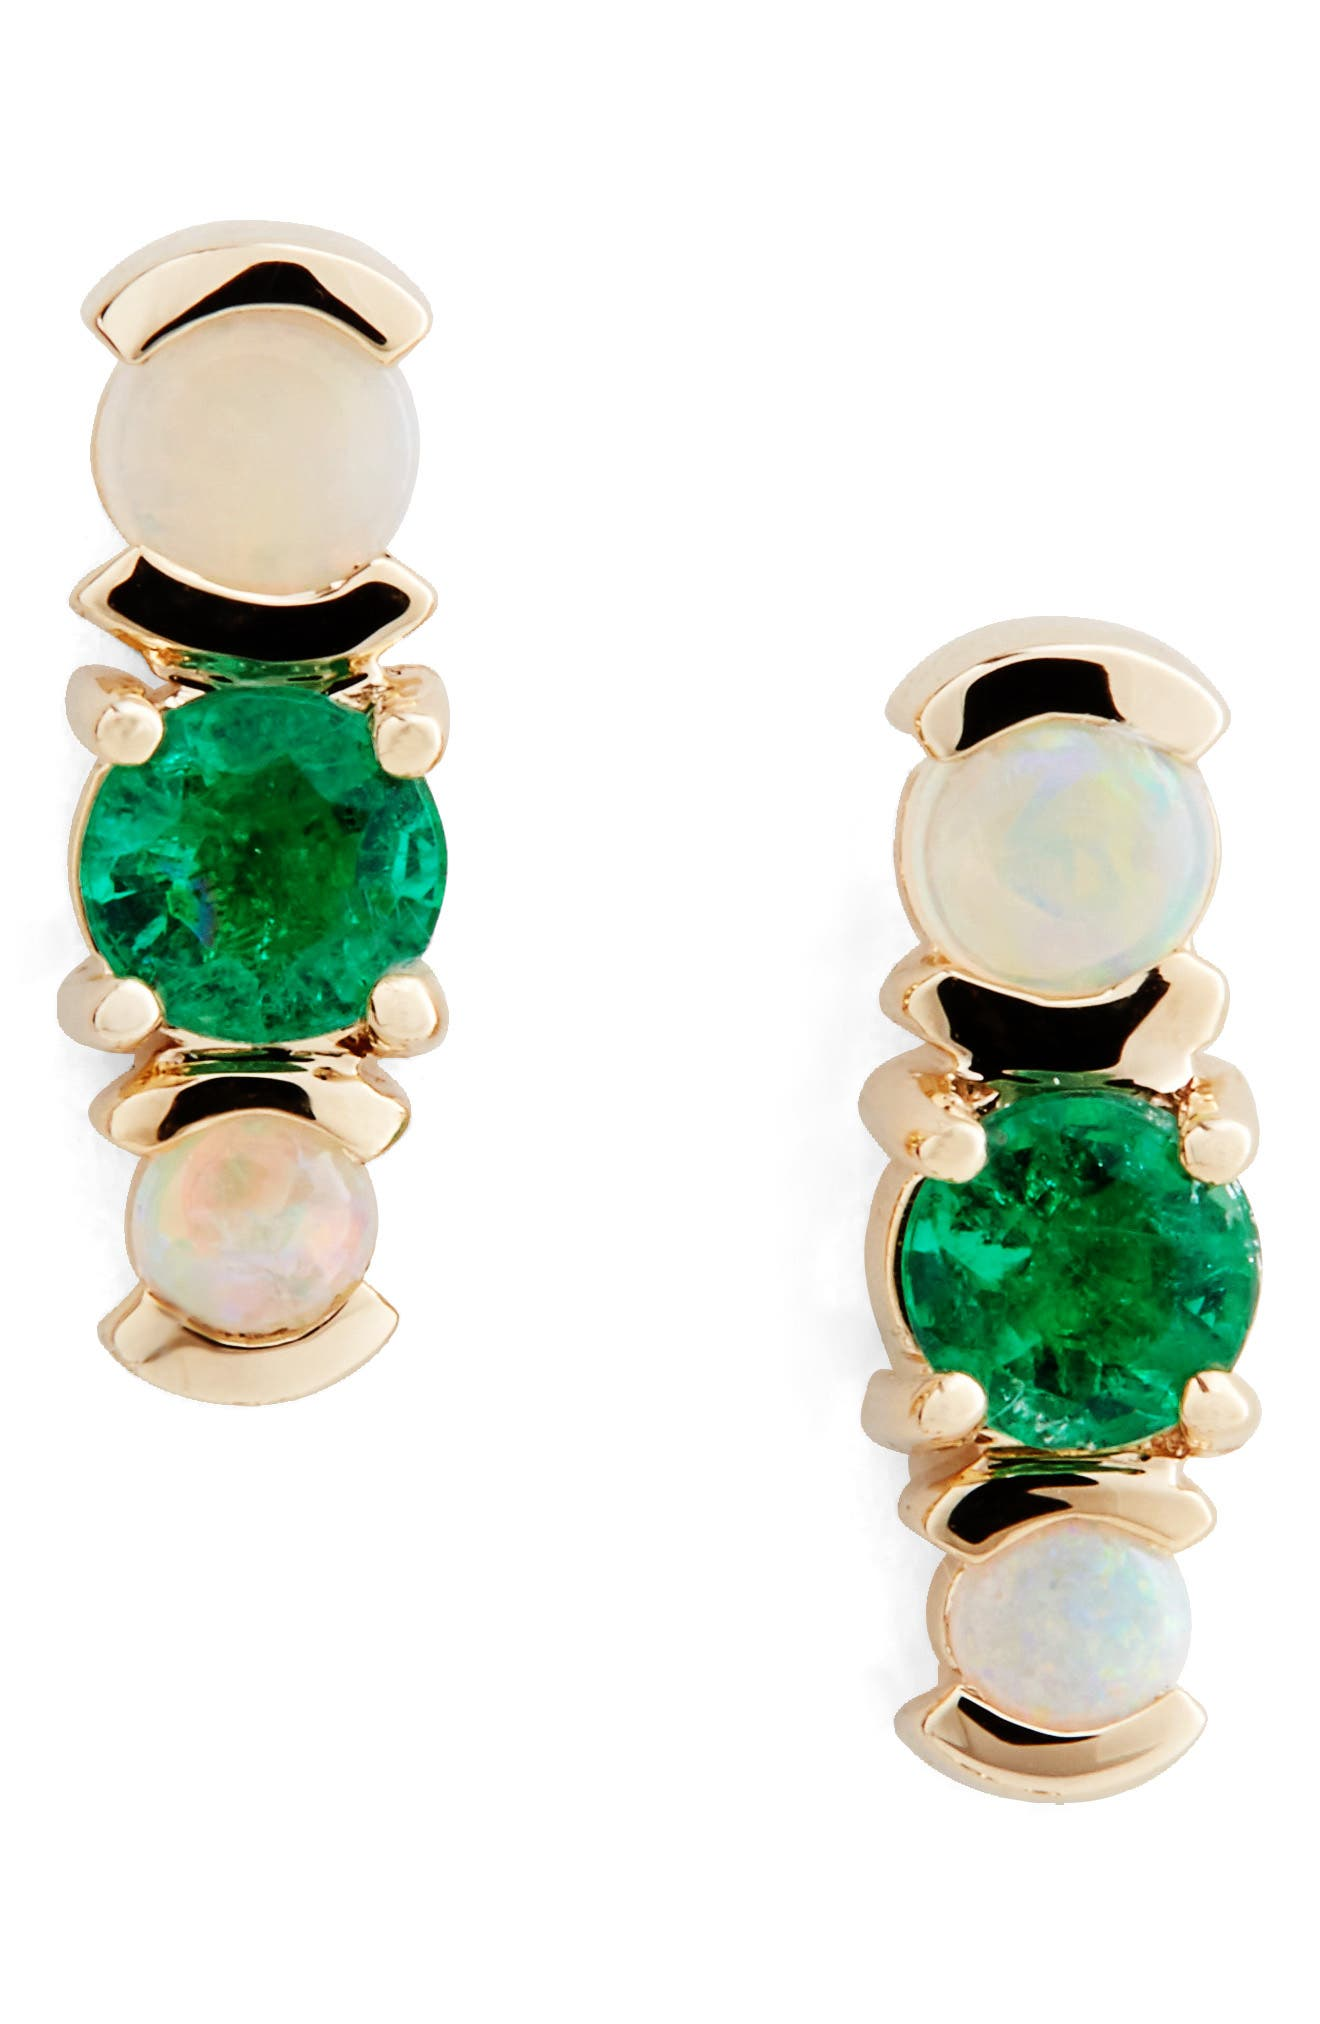 Alternate Image 1 Selected - Mociun Emerald & Opal Cluster Earrings (Nordstrom Exclusive)